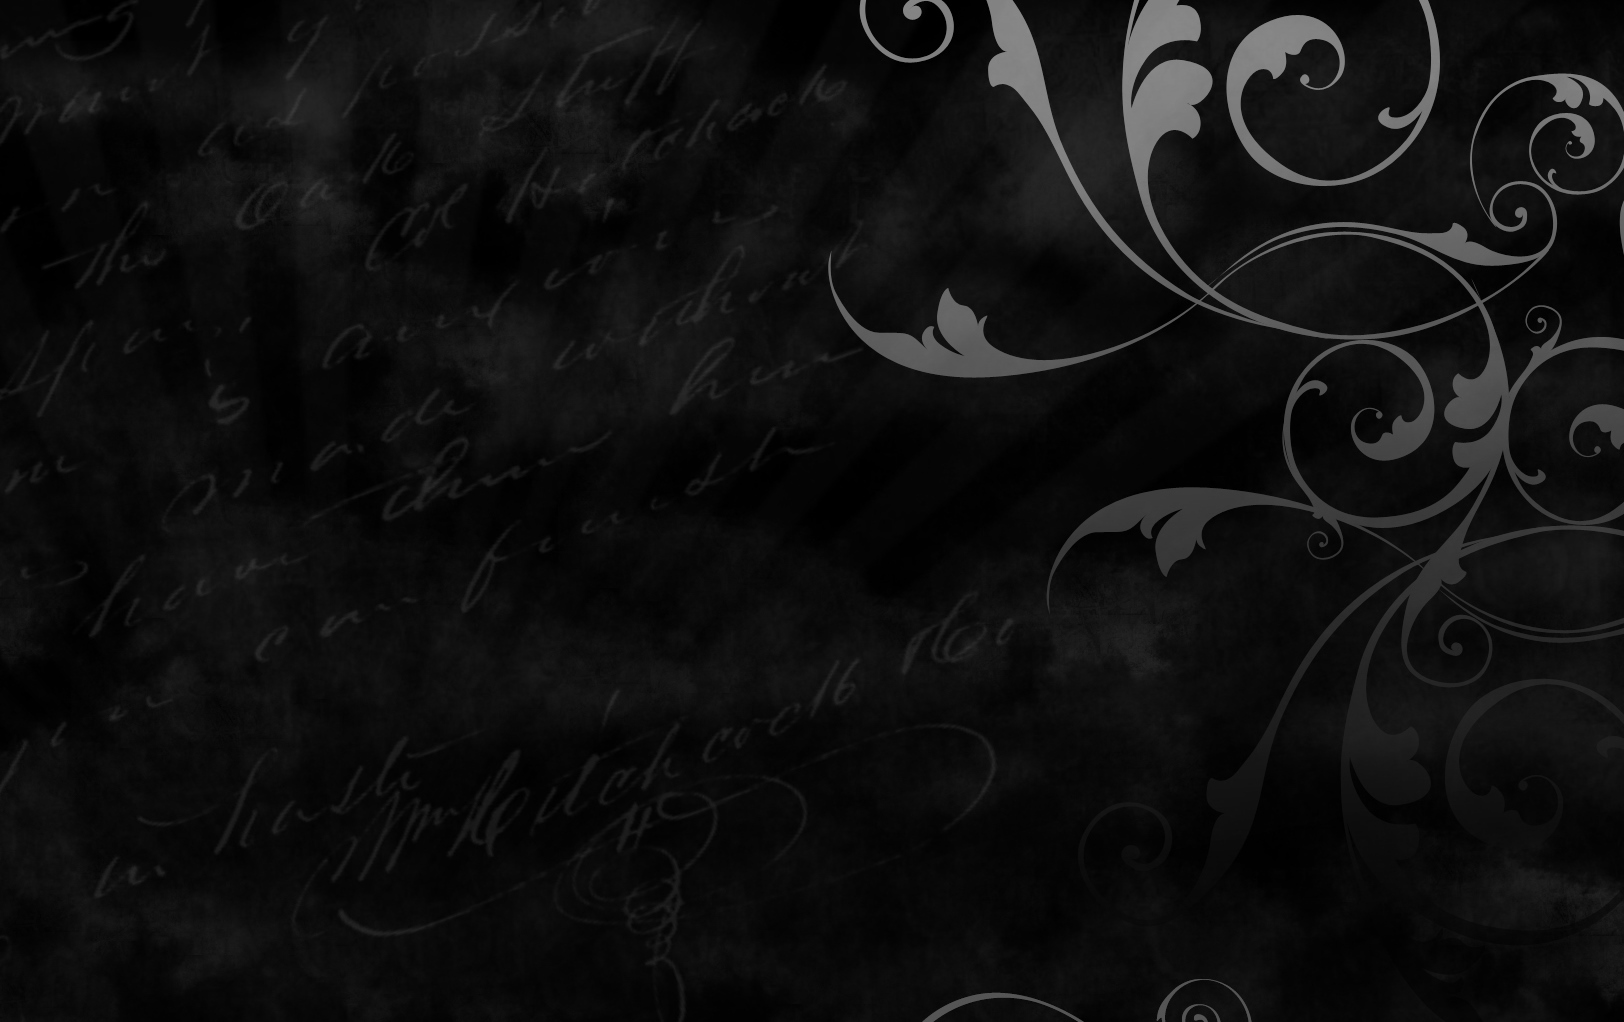 HD Wallpapers Abstract Black Wallpaper Download 2014 Image Black 1624x1022